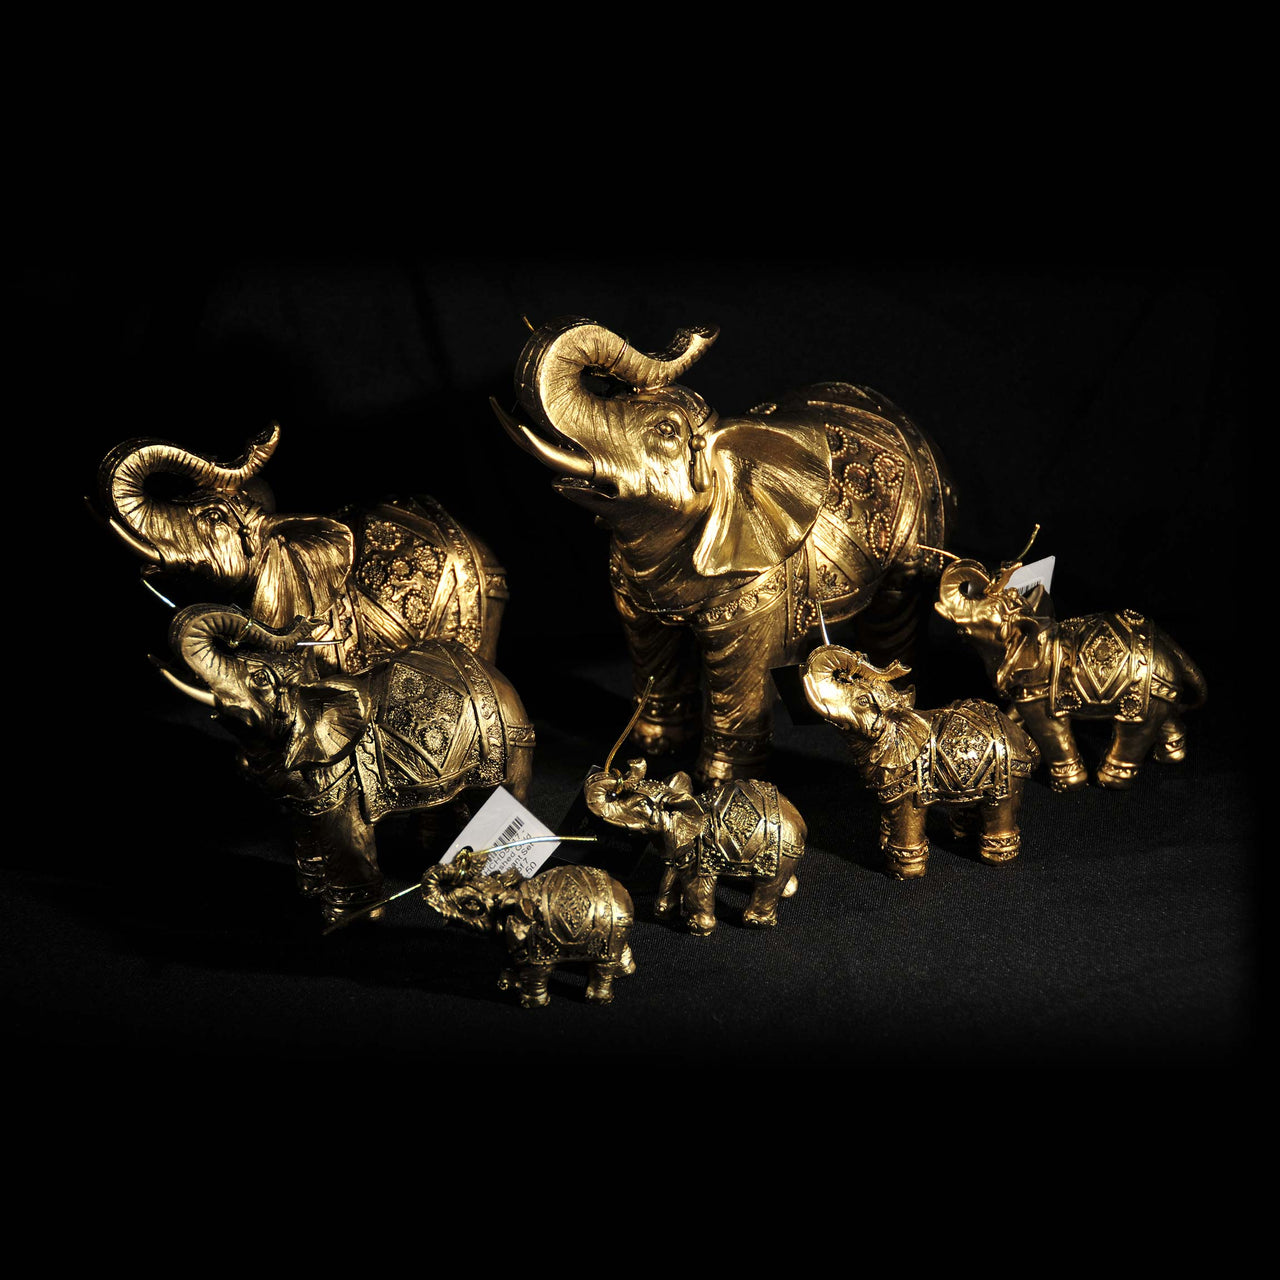 HCHD5020 - Brushed Gold Elephant Set - 4 of 7